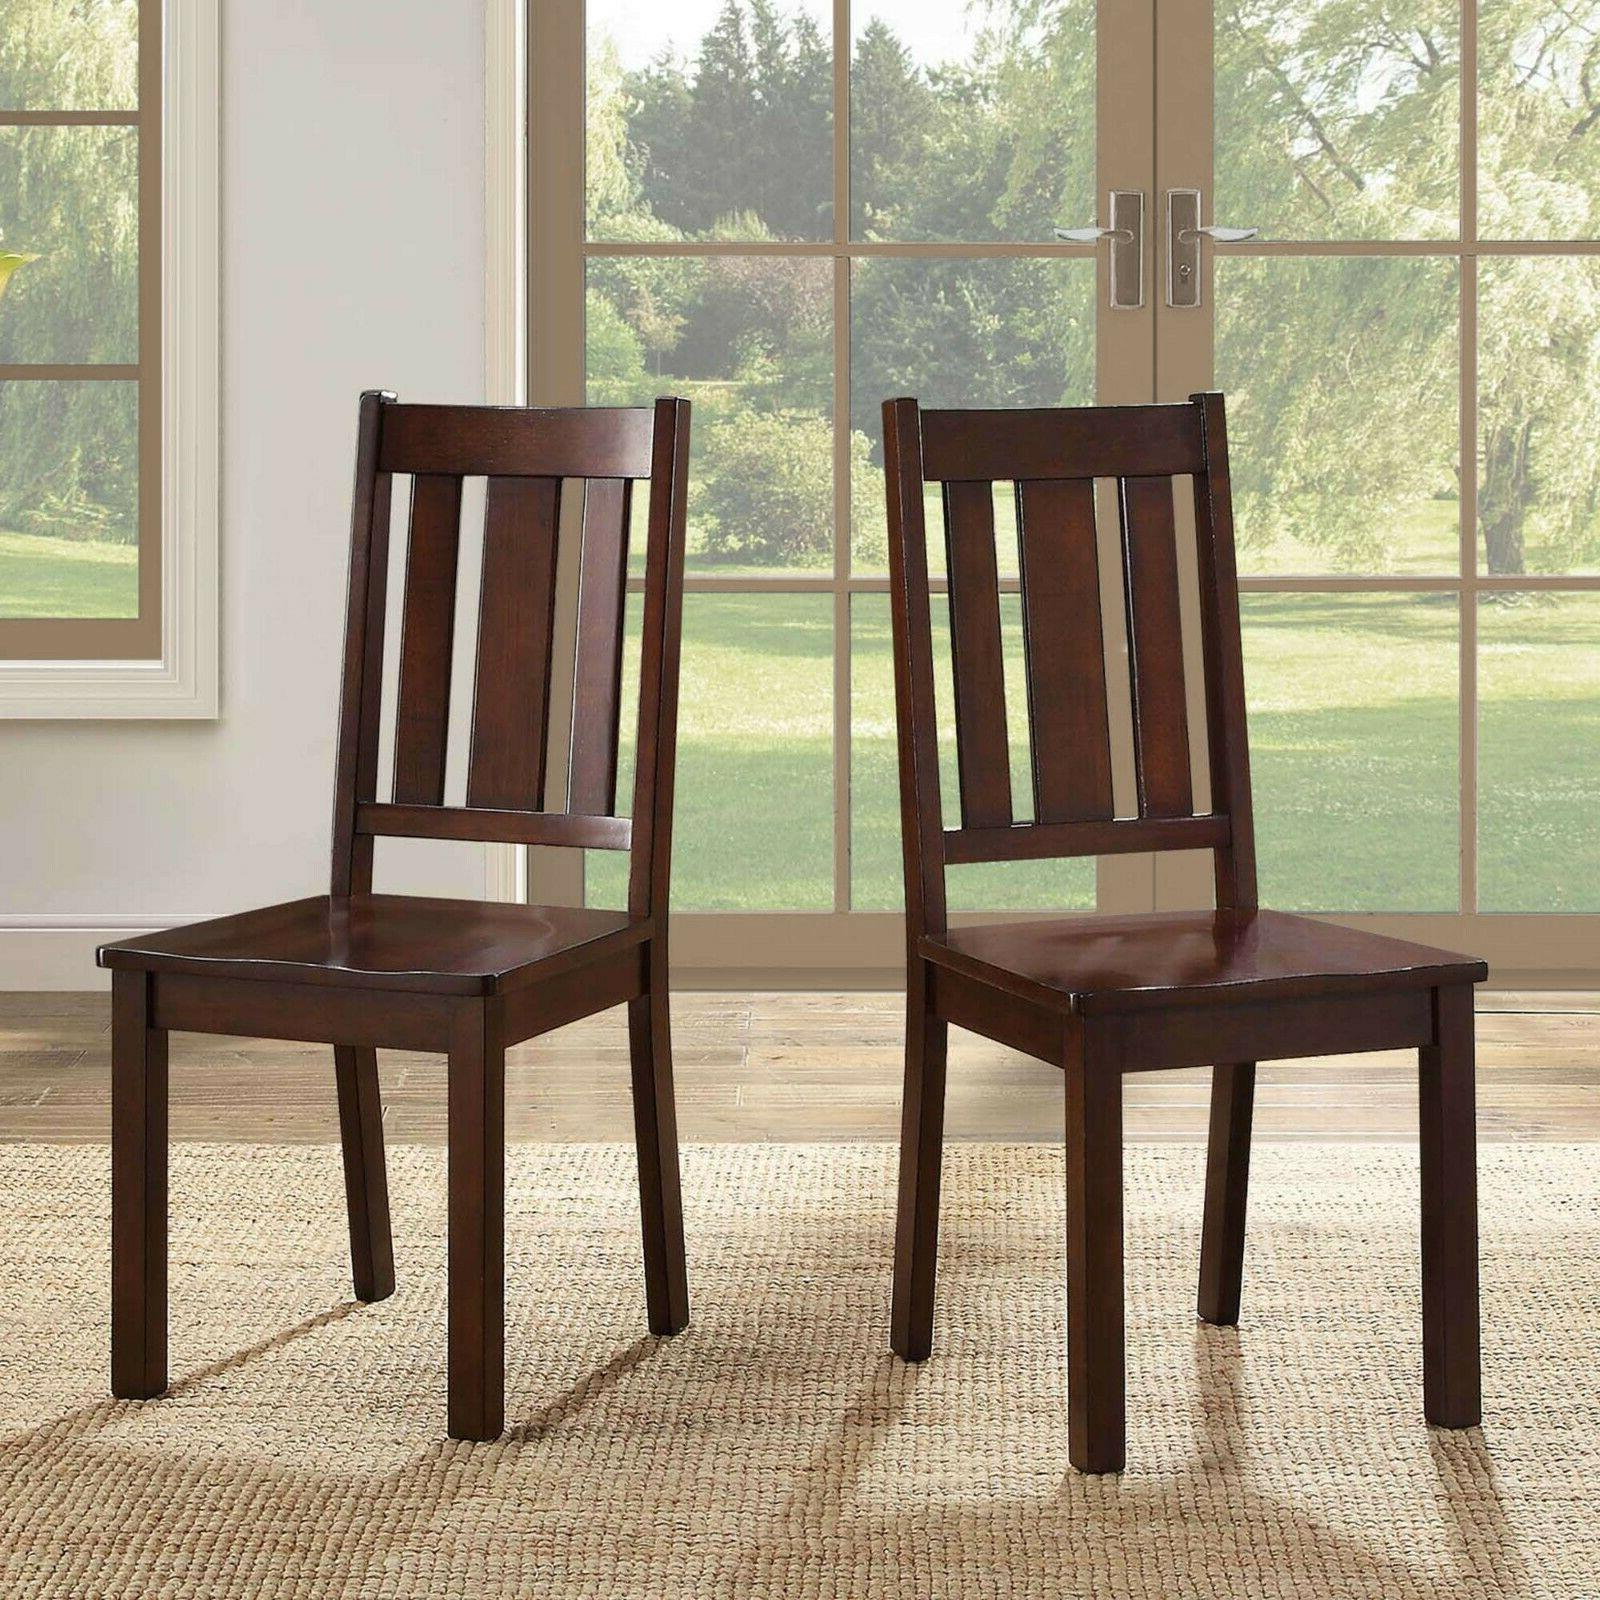 Dining Room Set Wooden Chairs Sets 7 Piece